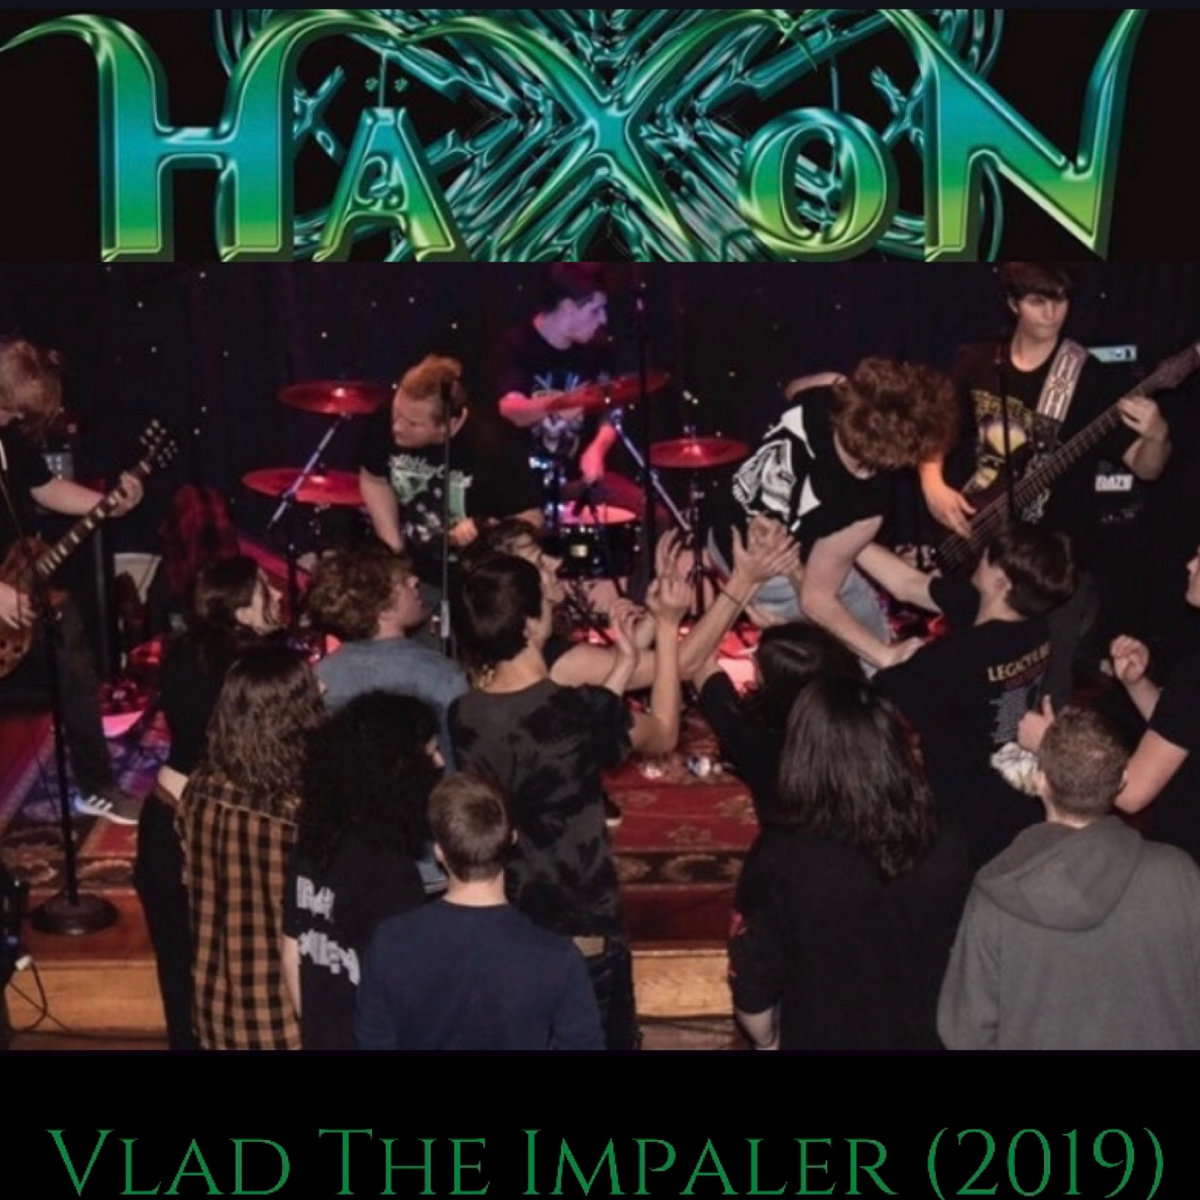 Vlad The Impaler (2019) by Haxon